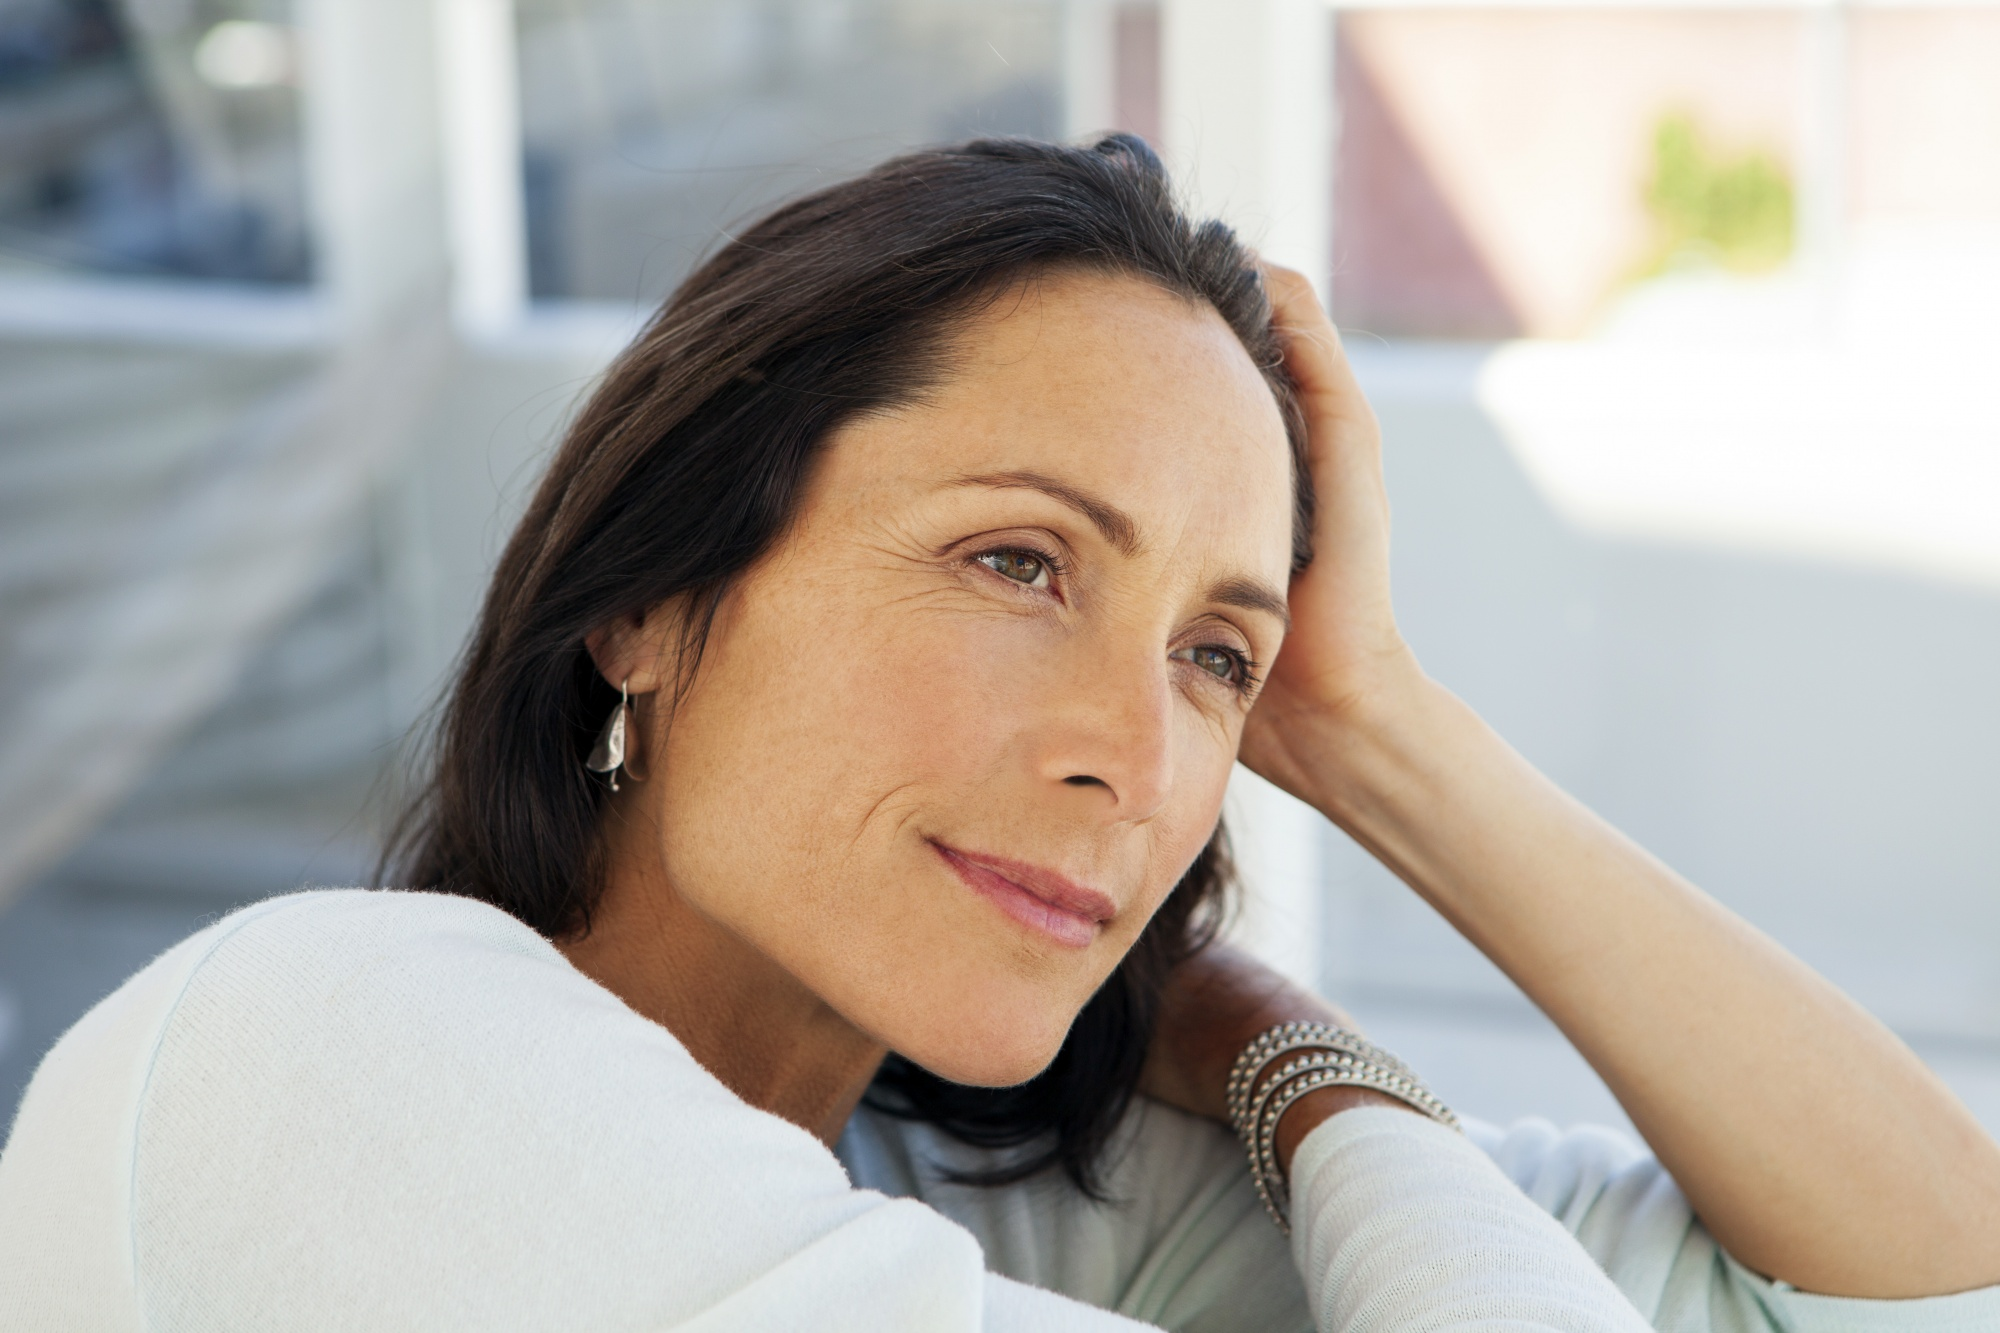 Embrace negative thoughts and turn them into joy, dark-haired middle-aged woman in white shirt thinking